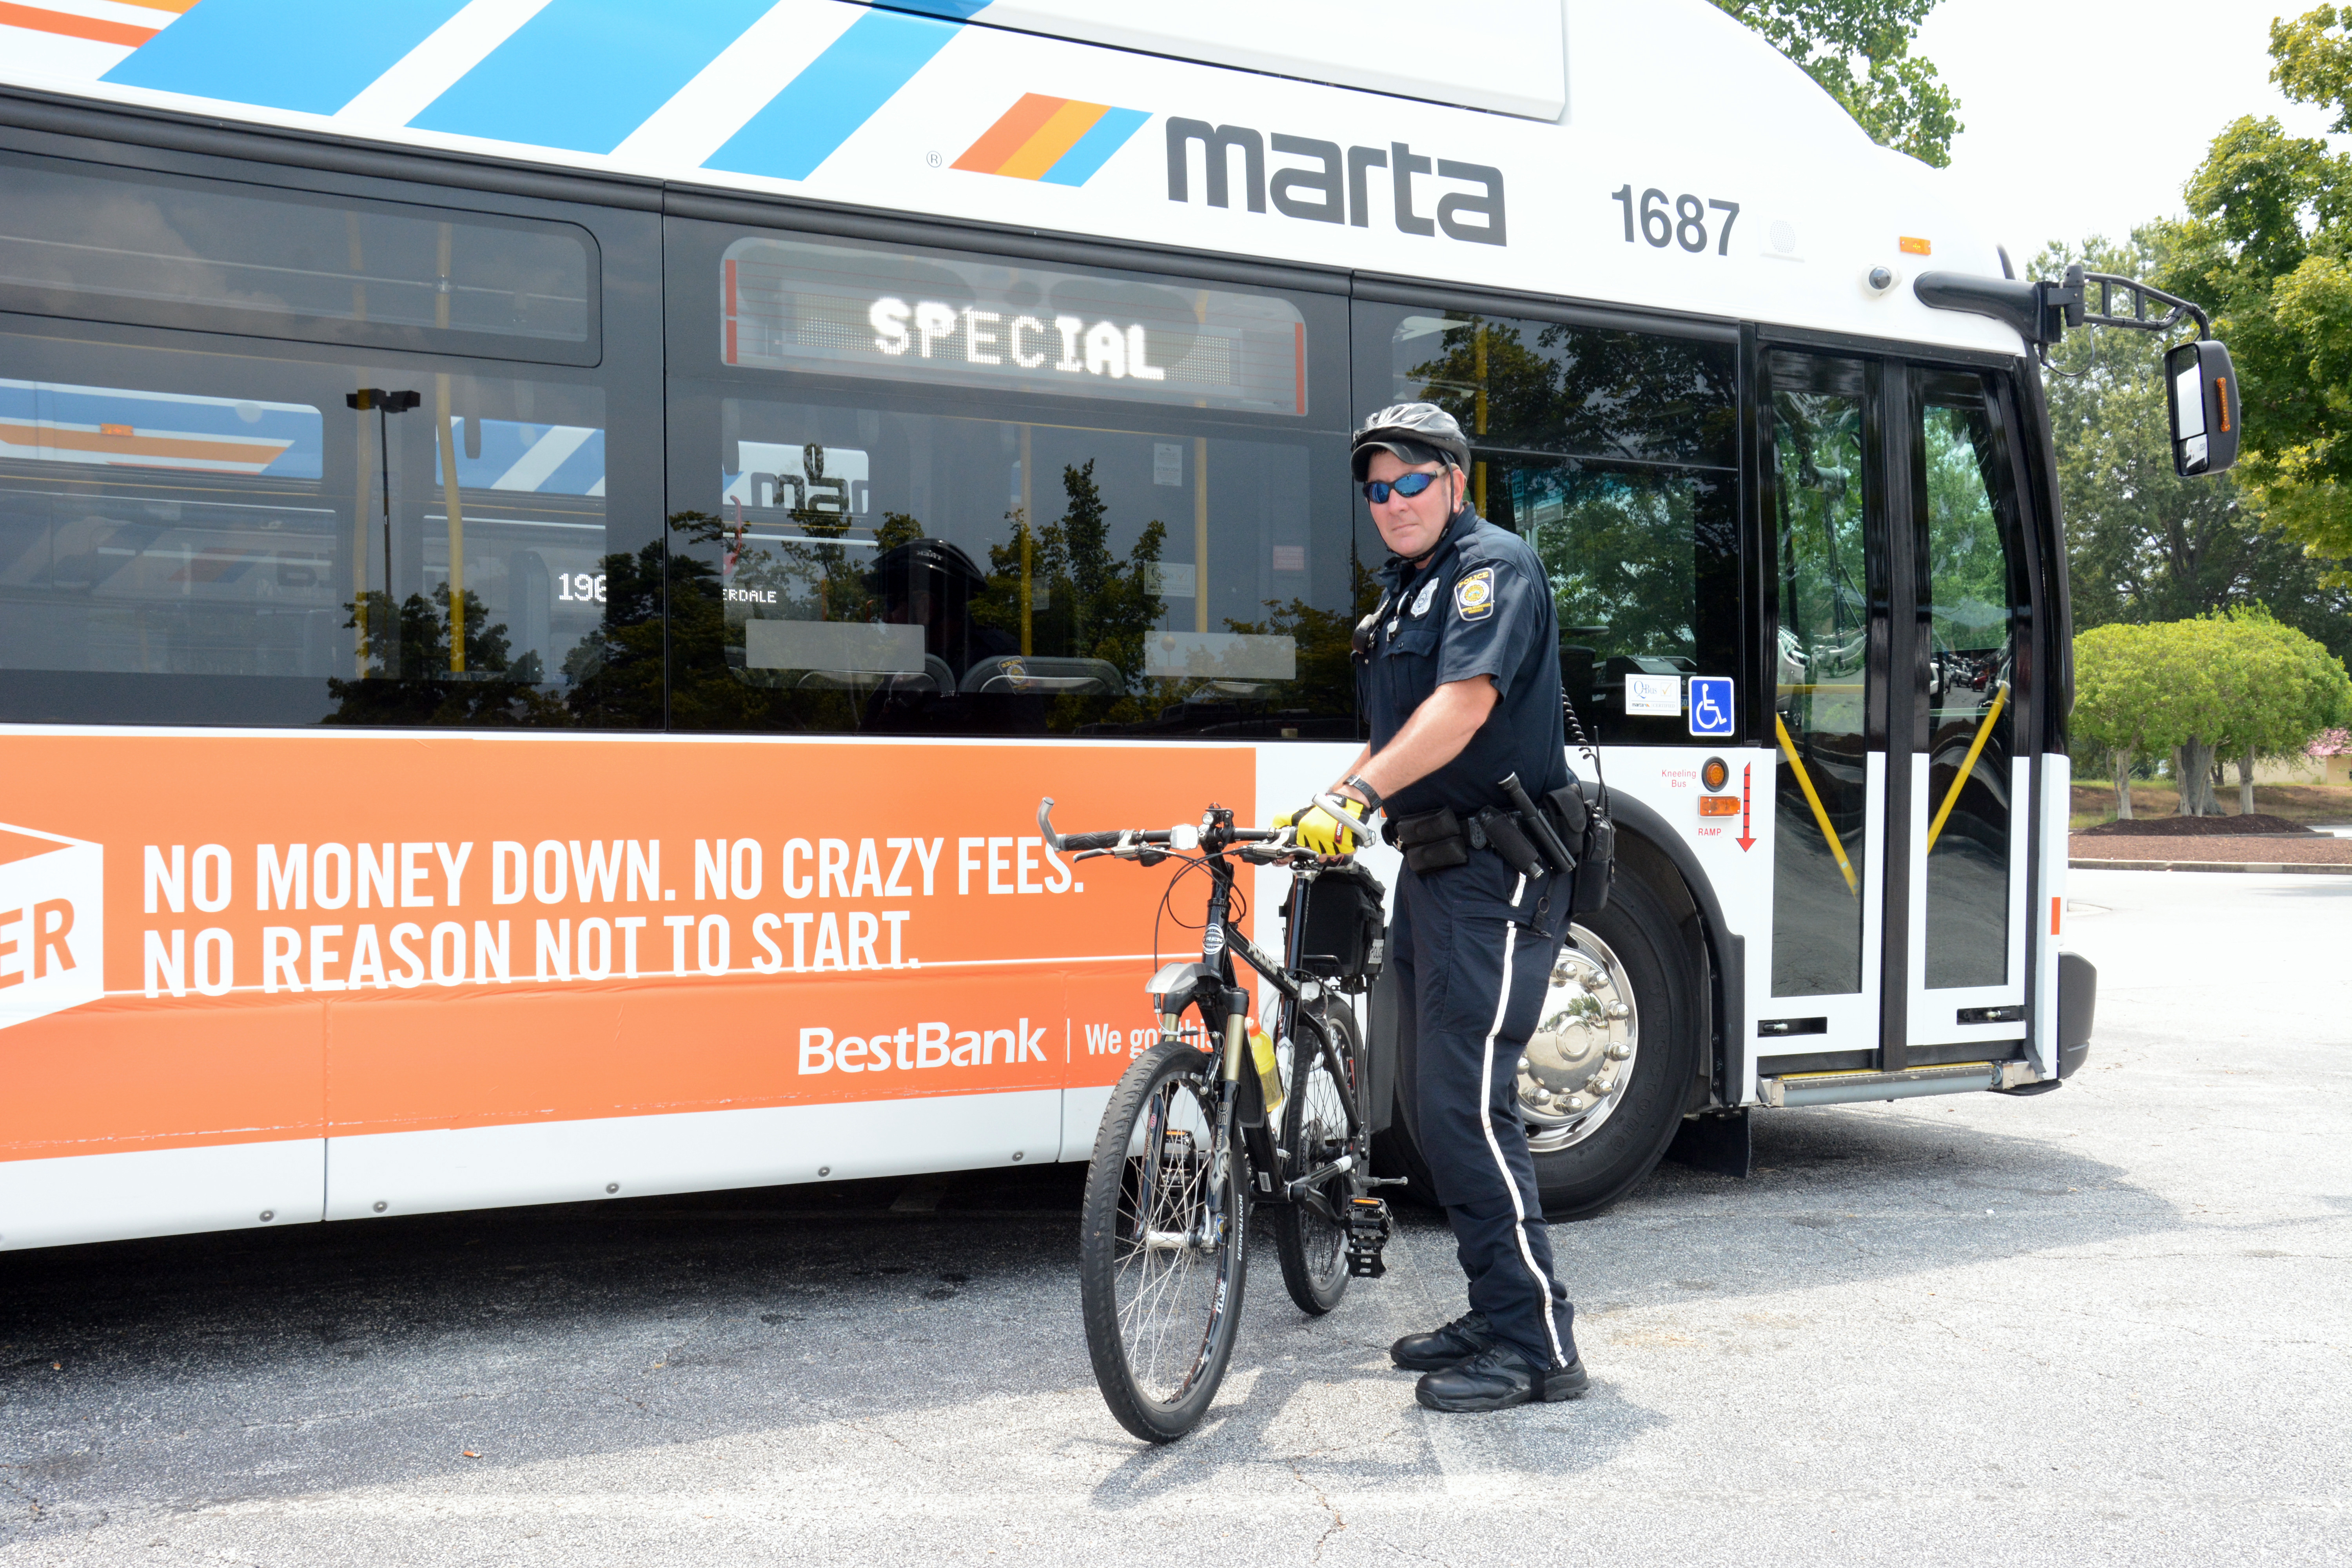 MPD Bike Patrol